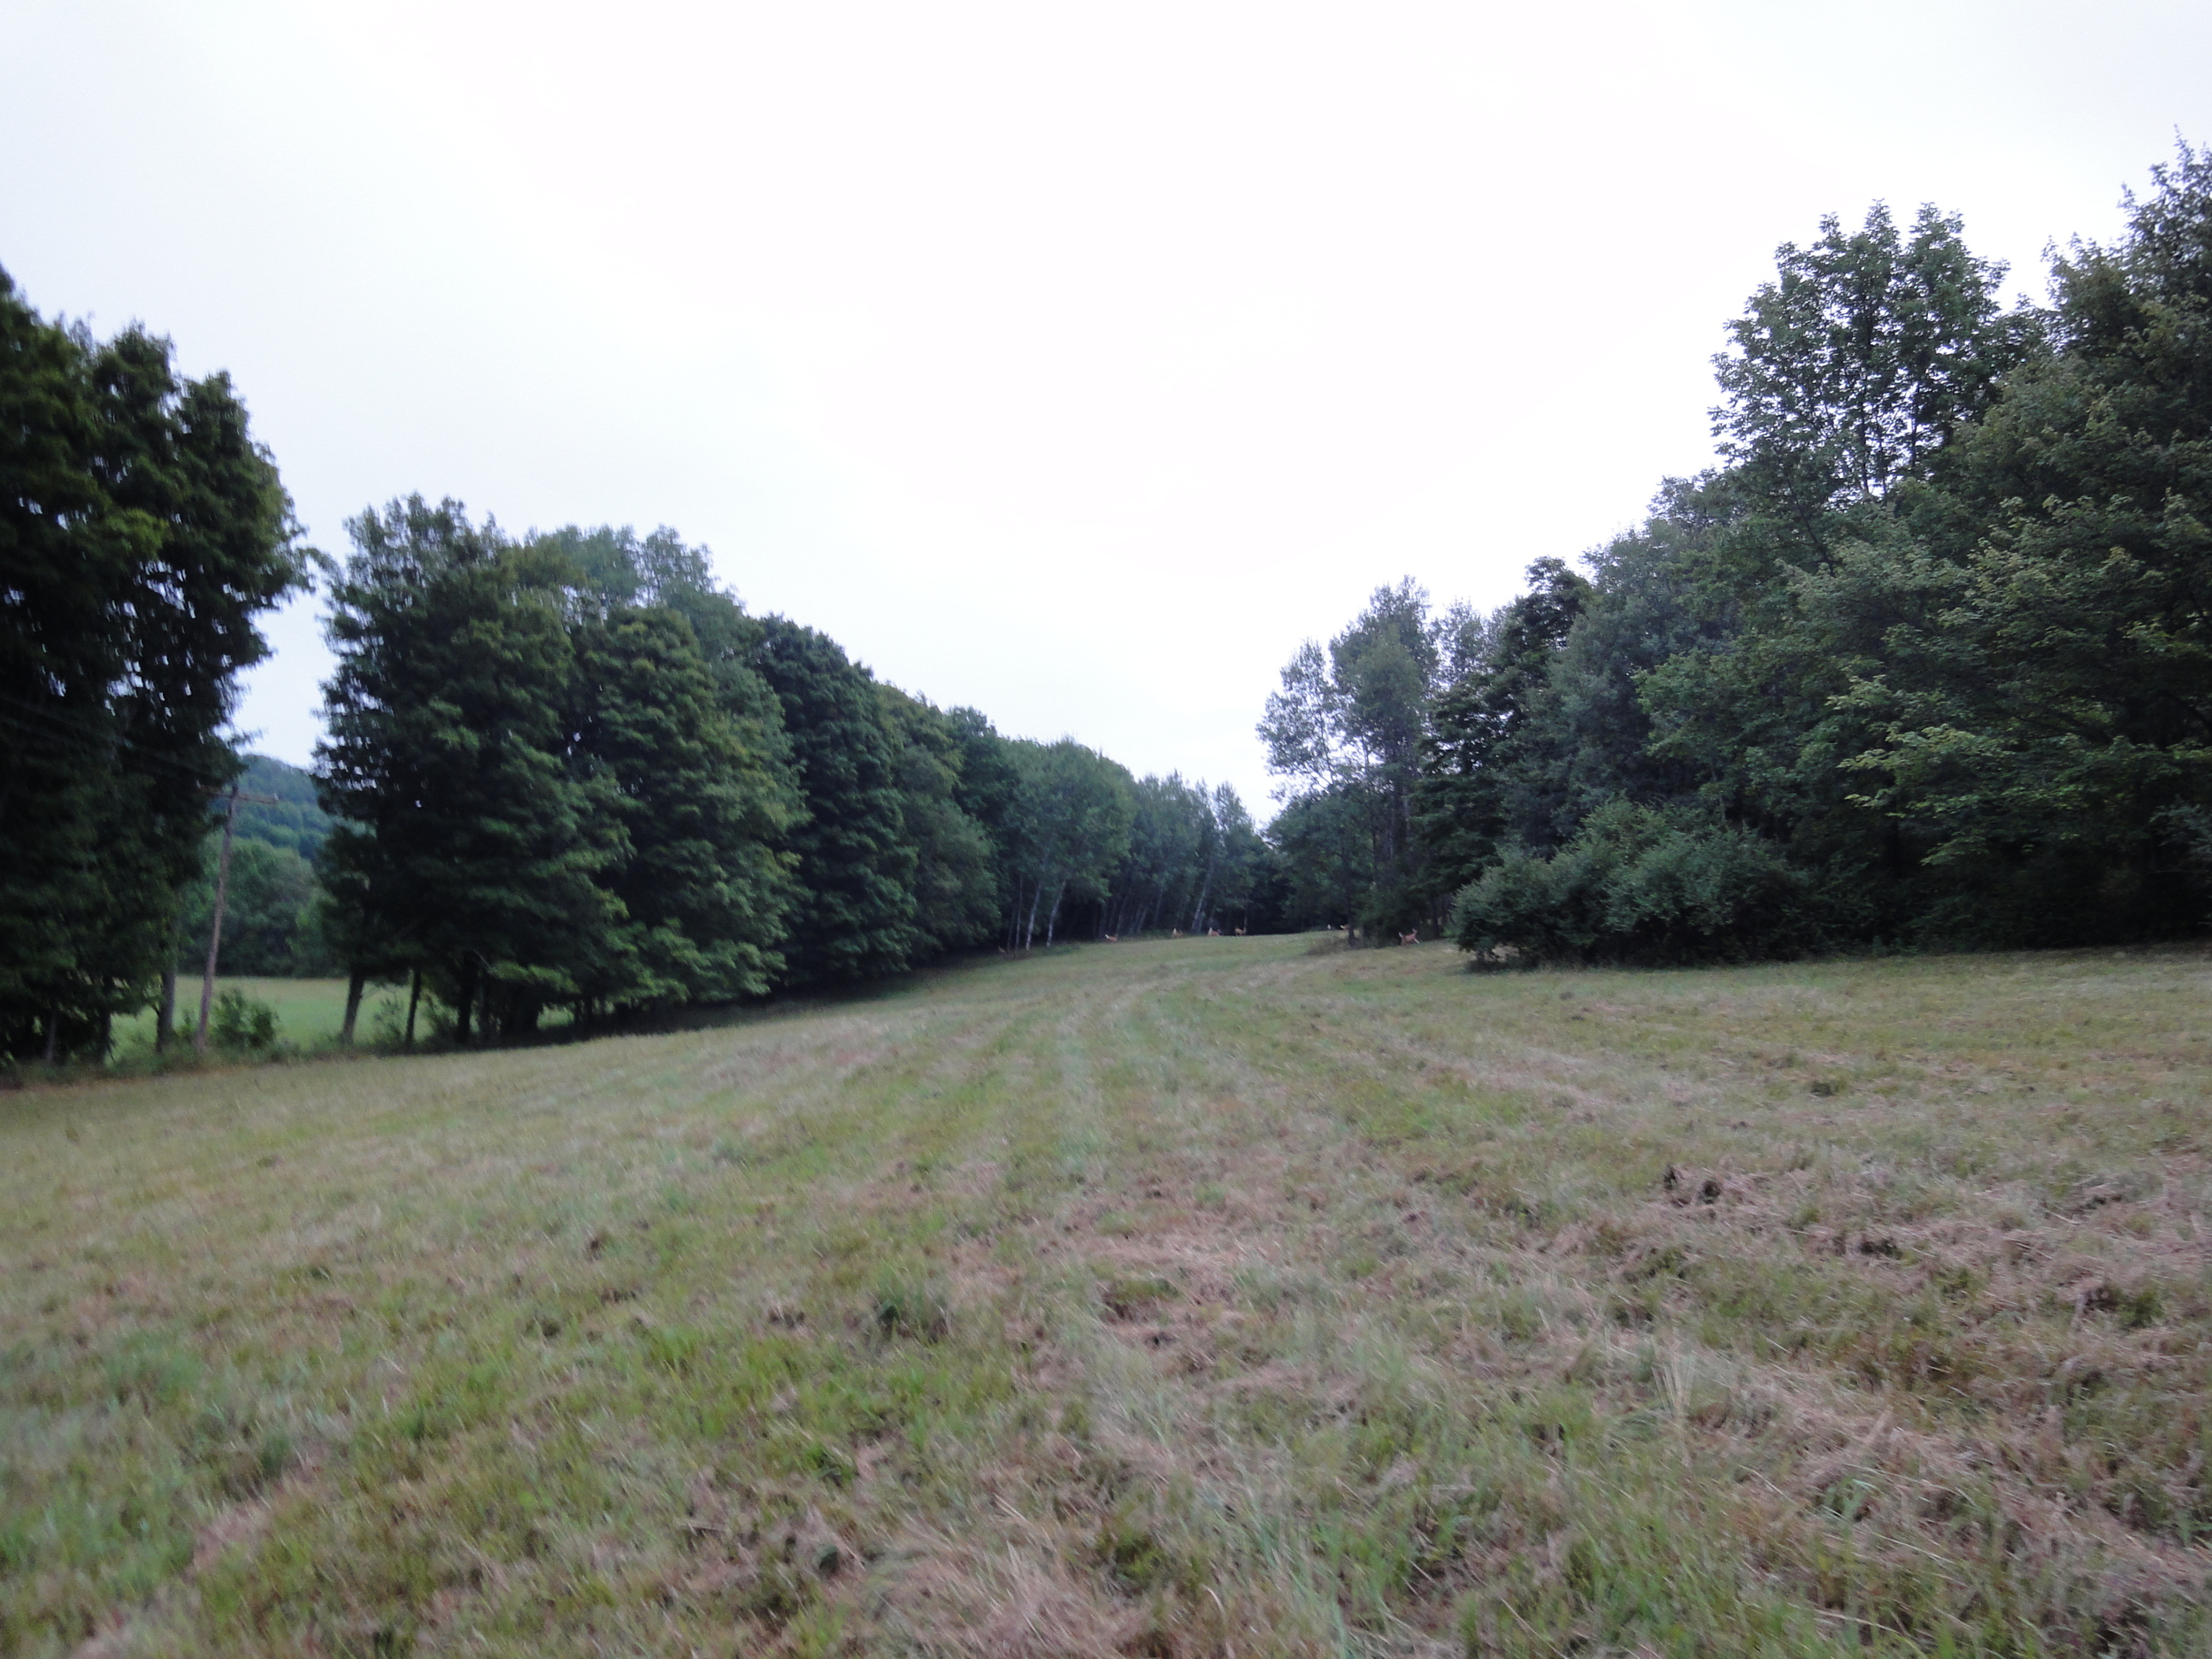 We had 13.2 acres to wander on -- mostly hills and some woods. Calvin & Hobbes would approve.